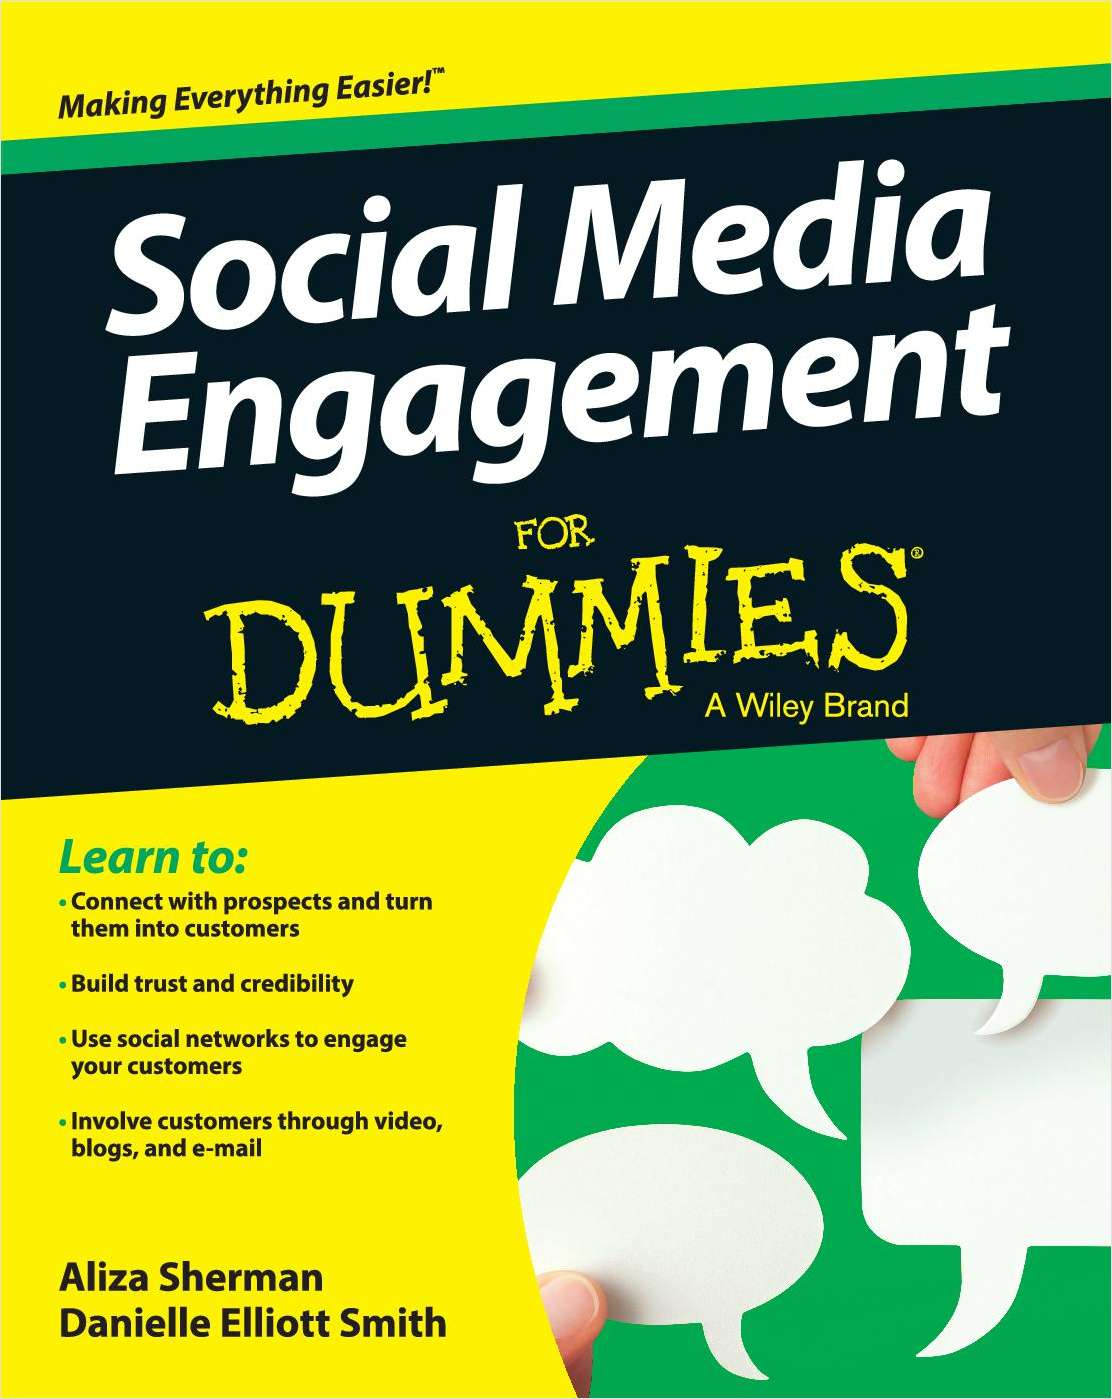 Social Media Engagement For Dummies -- Free Sample Chapter